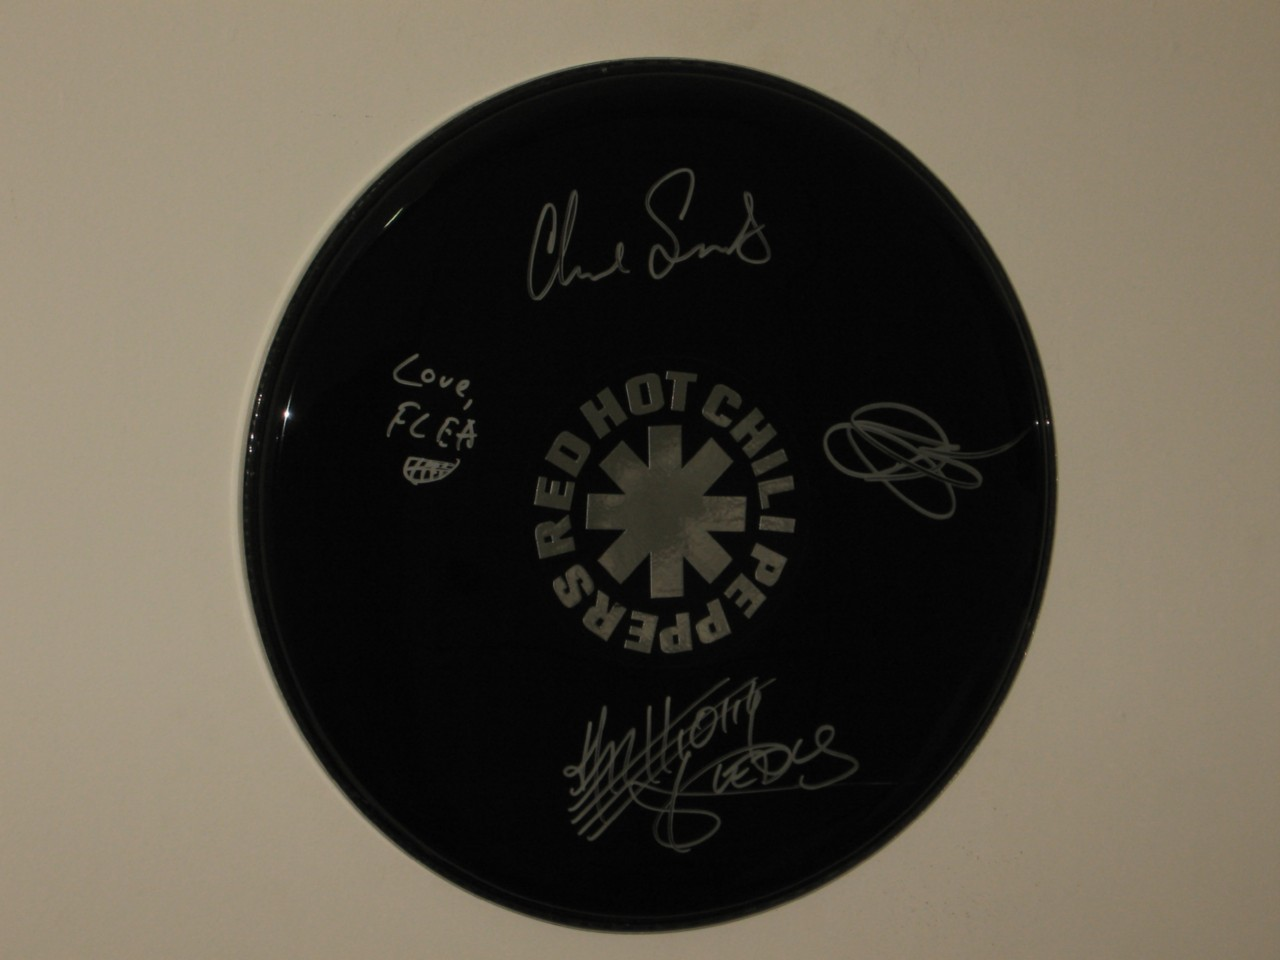 RED-HOT-CHILI-PEPPERS-HAND-SIGNED-LOGO-STYLE-16-INCH-DRUMHEAD-VERY-RARE